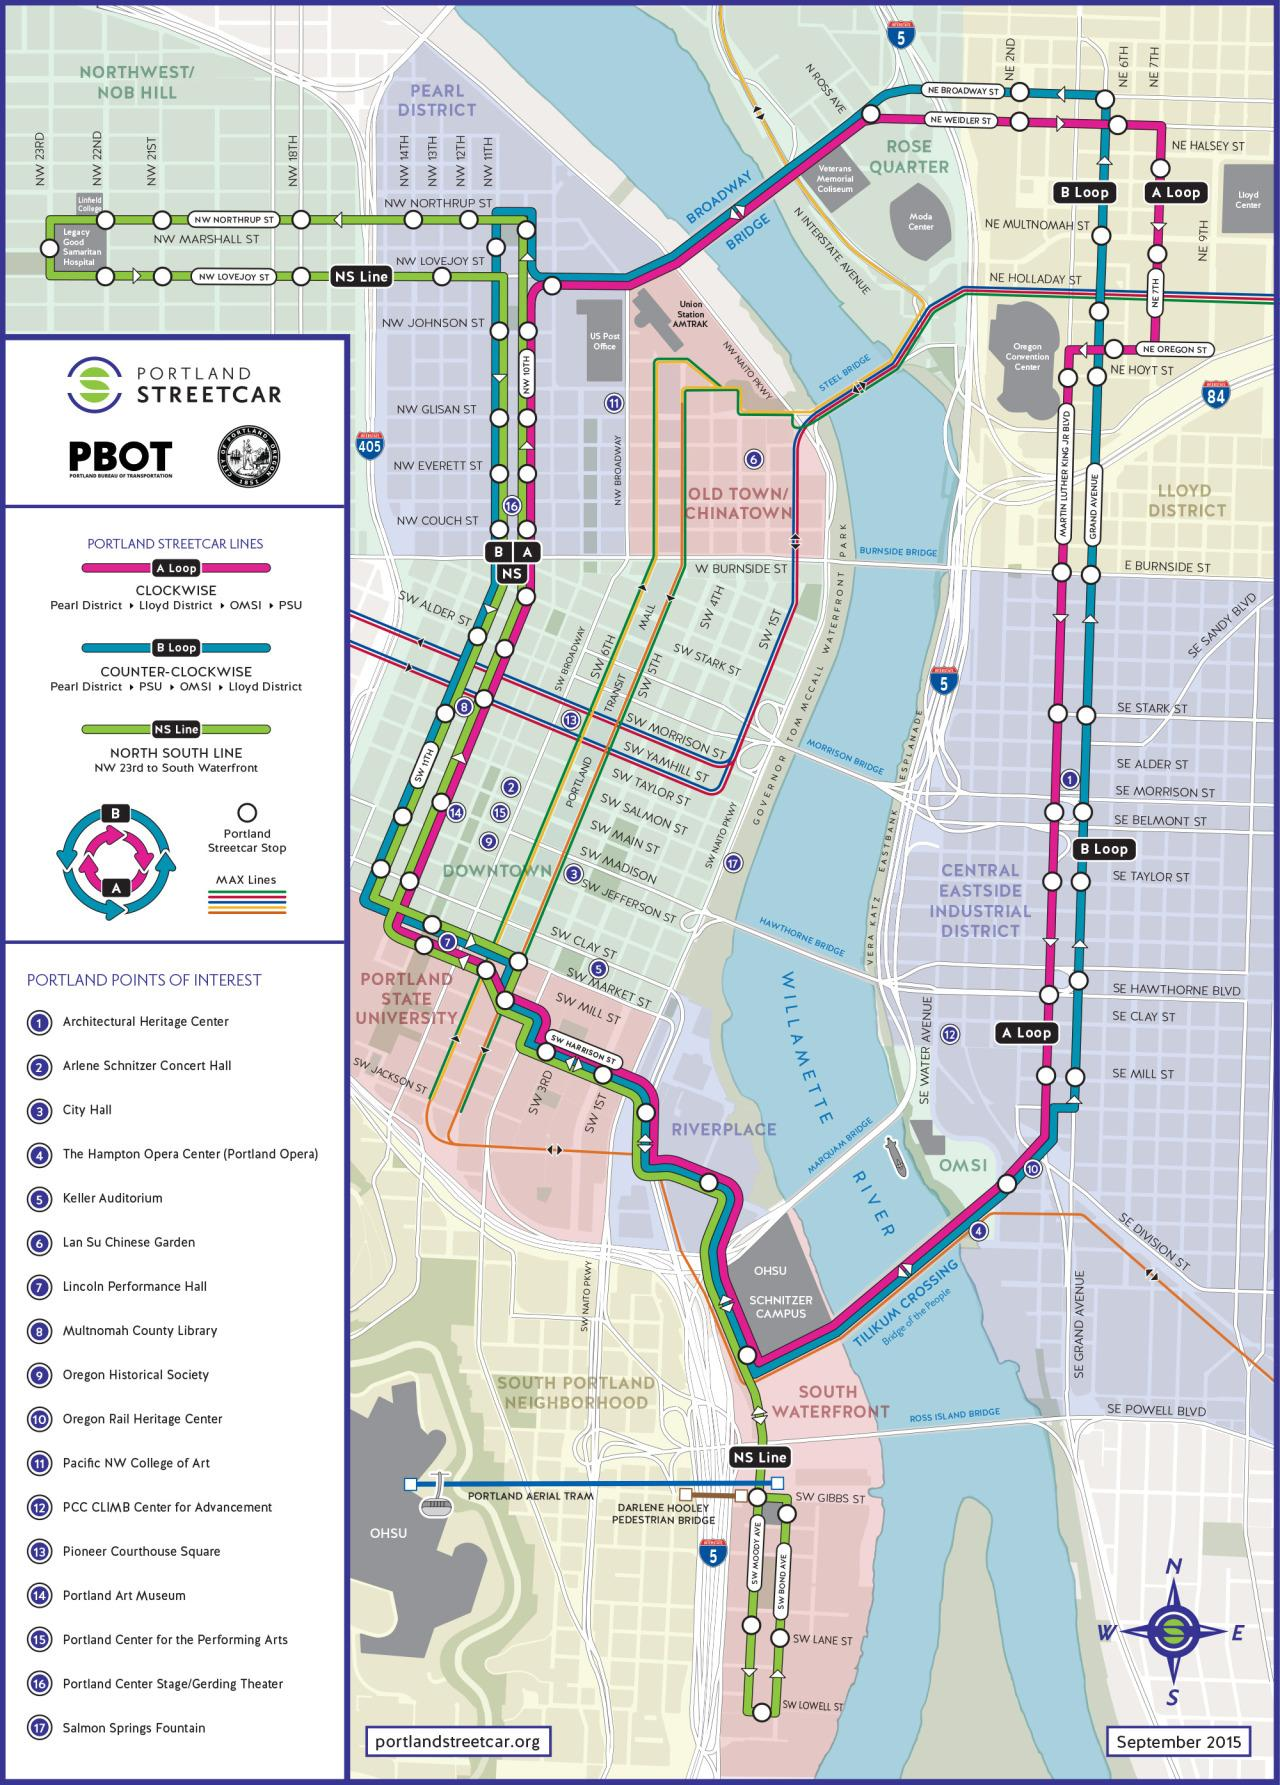 grossmont college campus map us flood map sahel map - trolley map san diego straight talk about the loop trolley show me portlandstreetcar map trolley map san diego grossmont college campus map